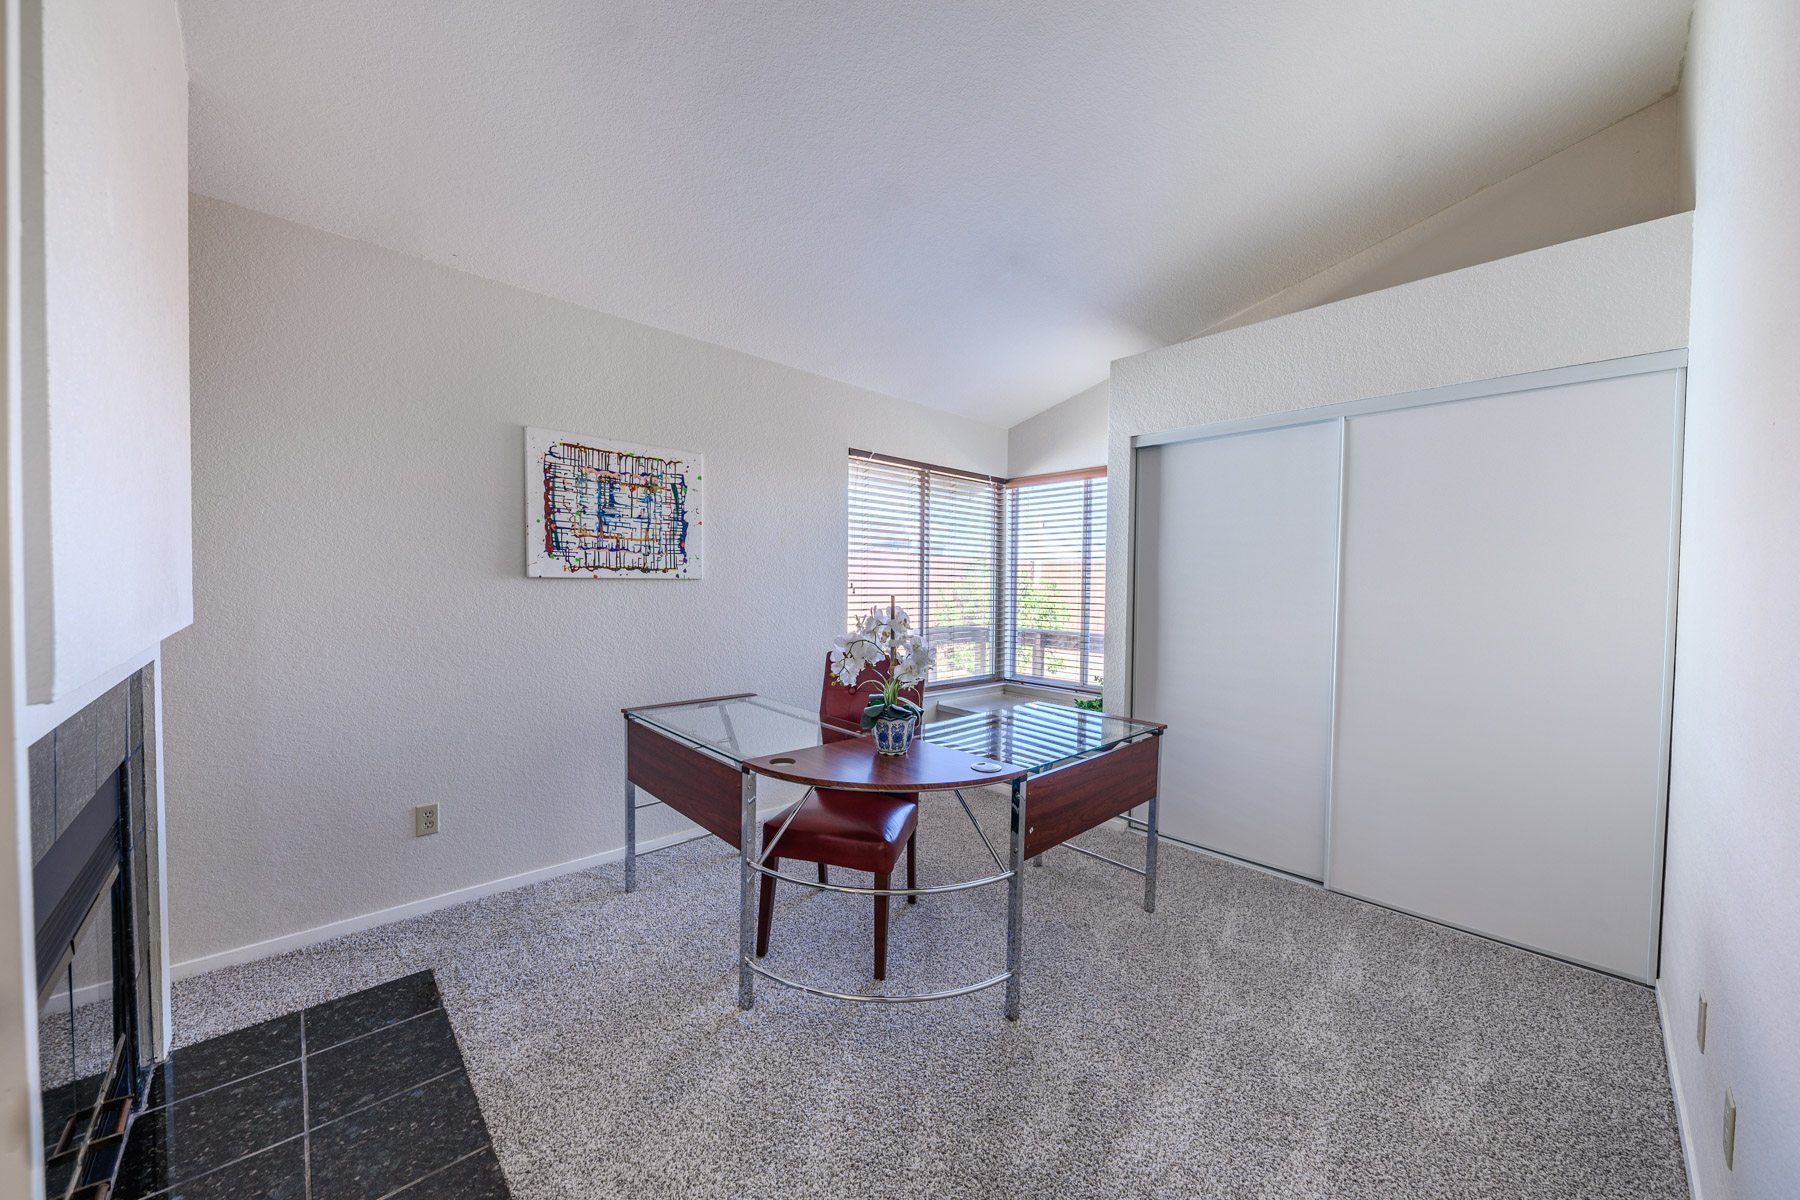 Additional photo for property listing at 2432 Skyview Drive, Reno, NV 89523 2432 Skyview Drive Reno, Nevada 89523 United States